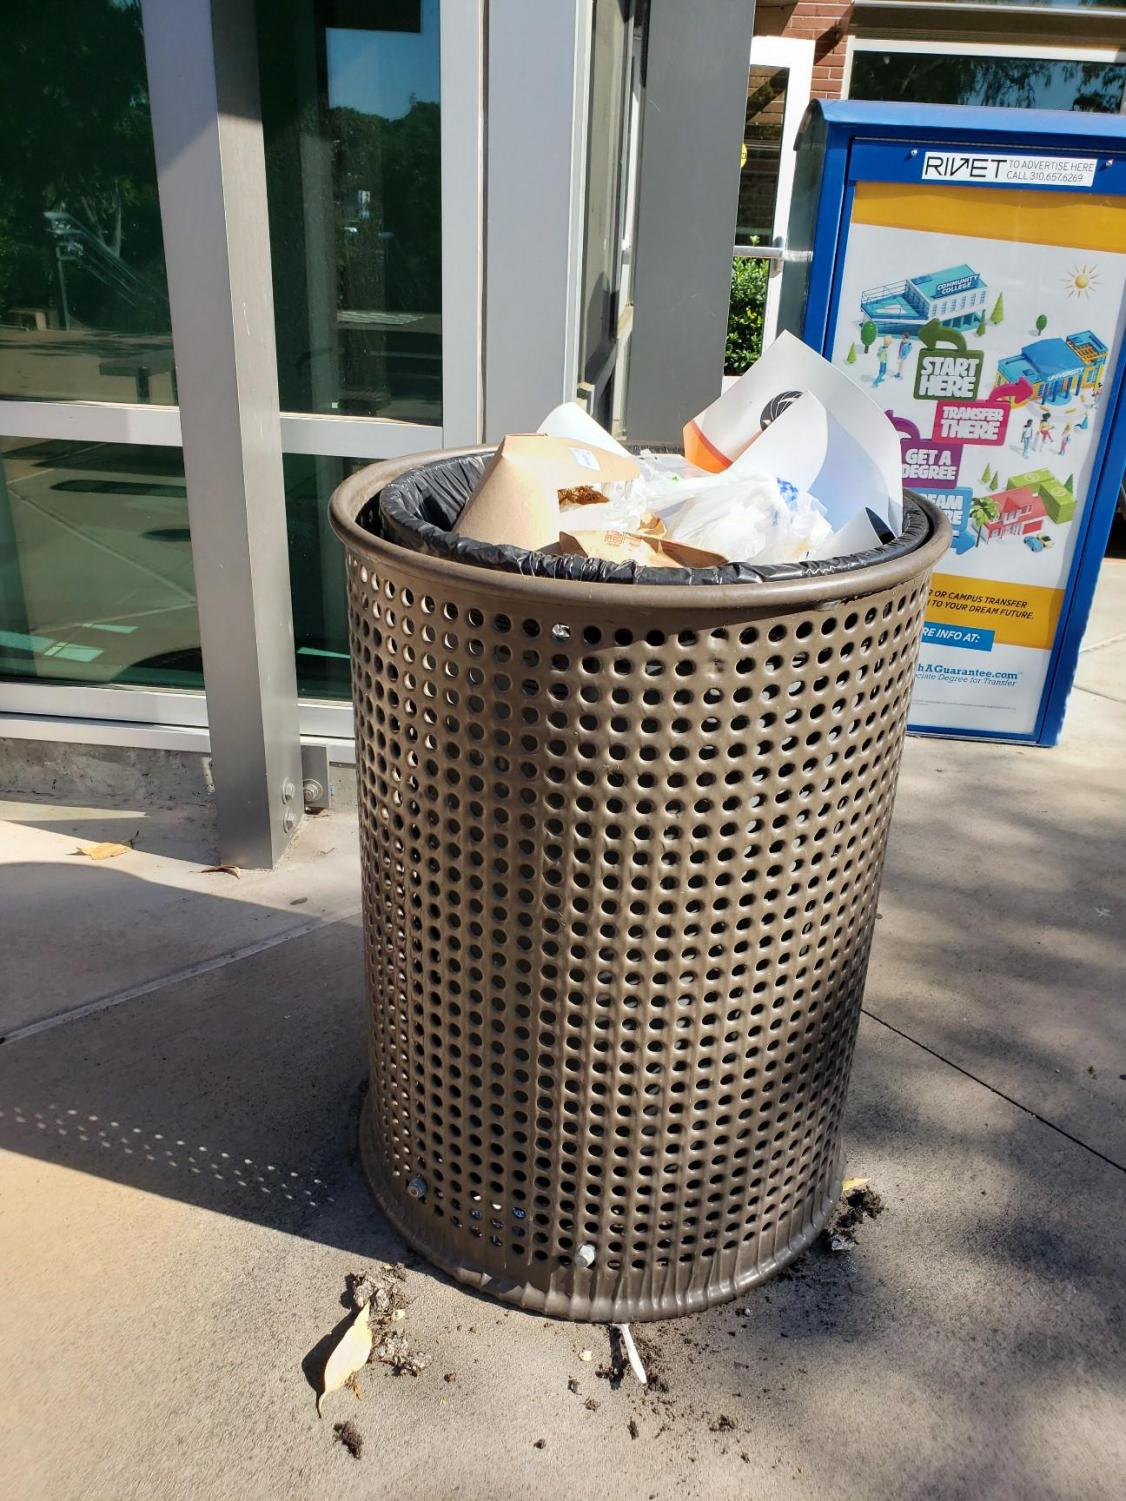 A trash can near the Student Services Center is filled to the brim with garbage due to significant custodial worker and equipment shortages on campus leaving some areas on campus unattended.